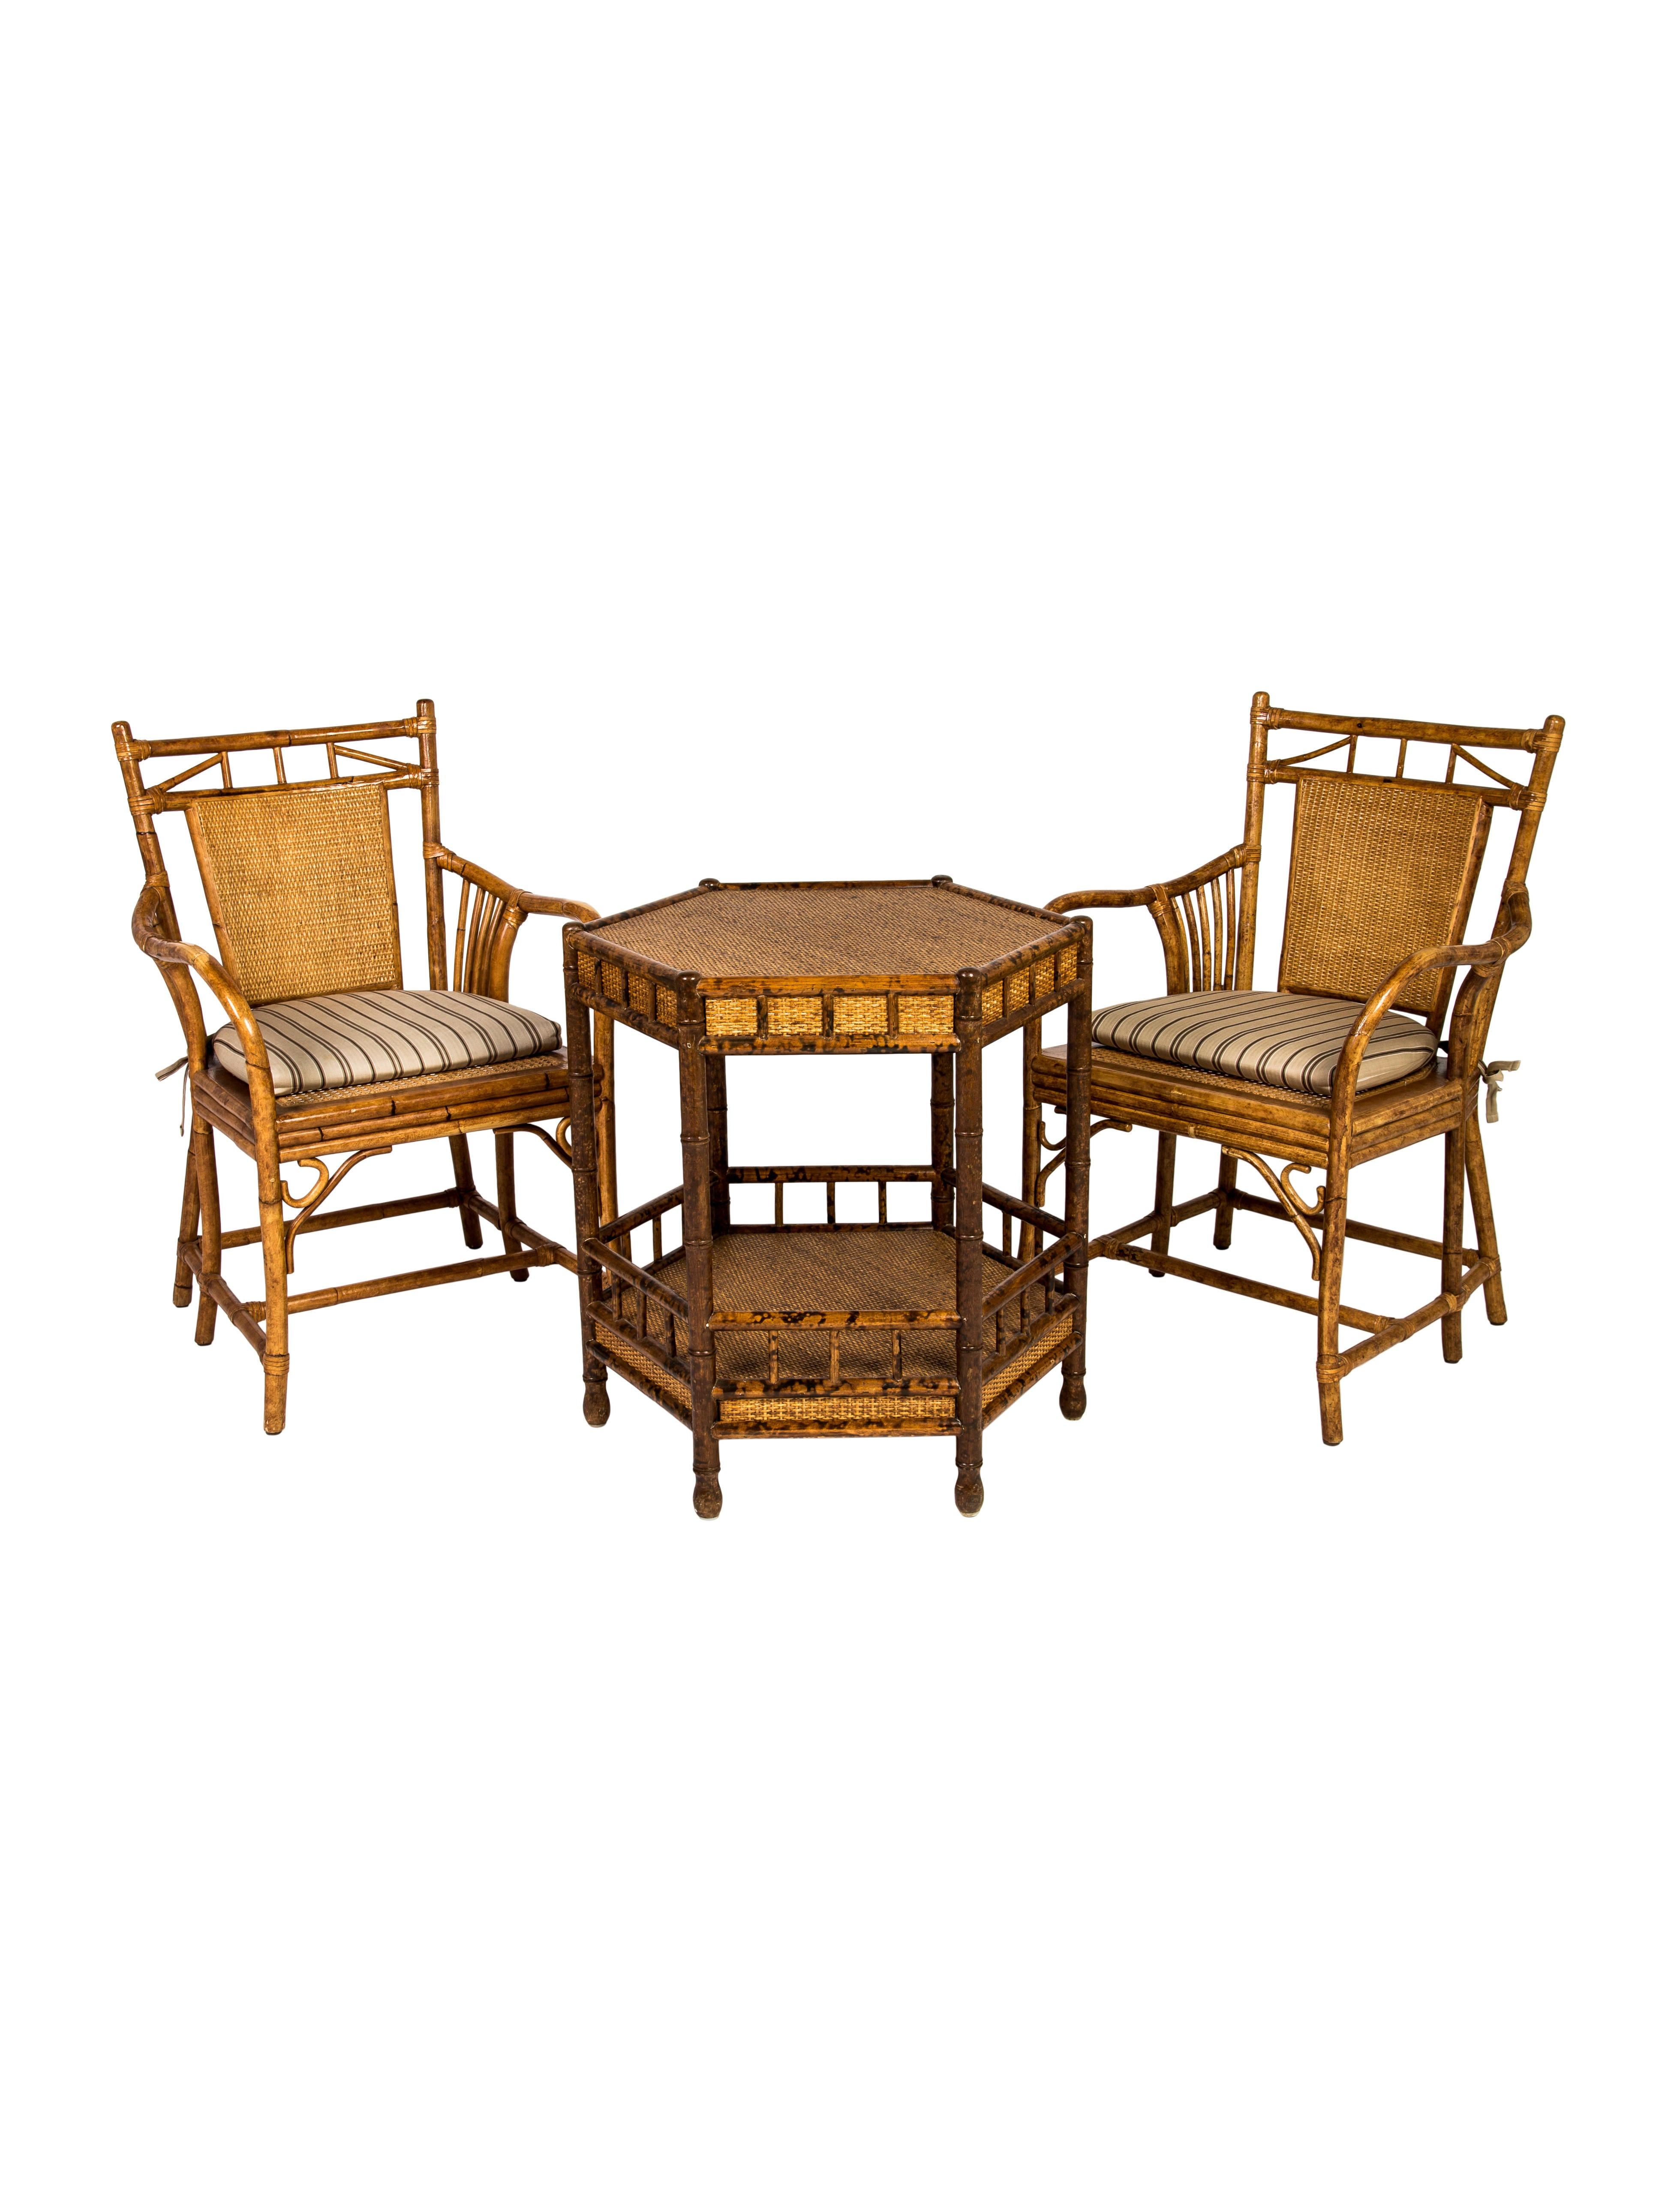 Bamboo chairs side table furniture furni20594 the for Bamboo side table